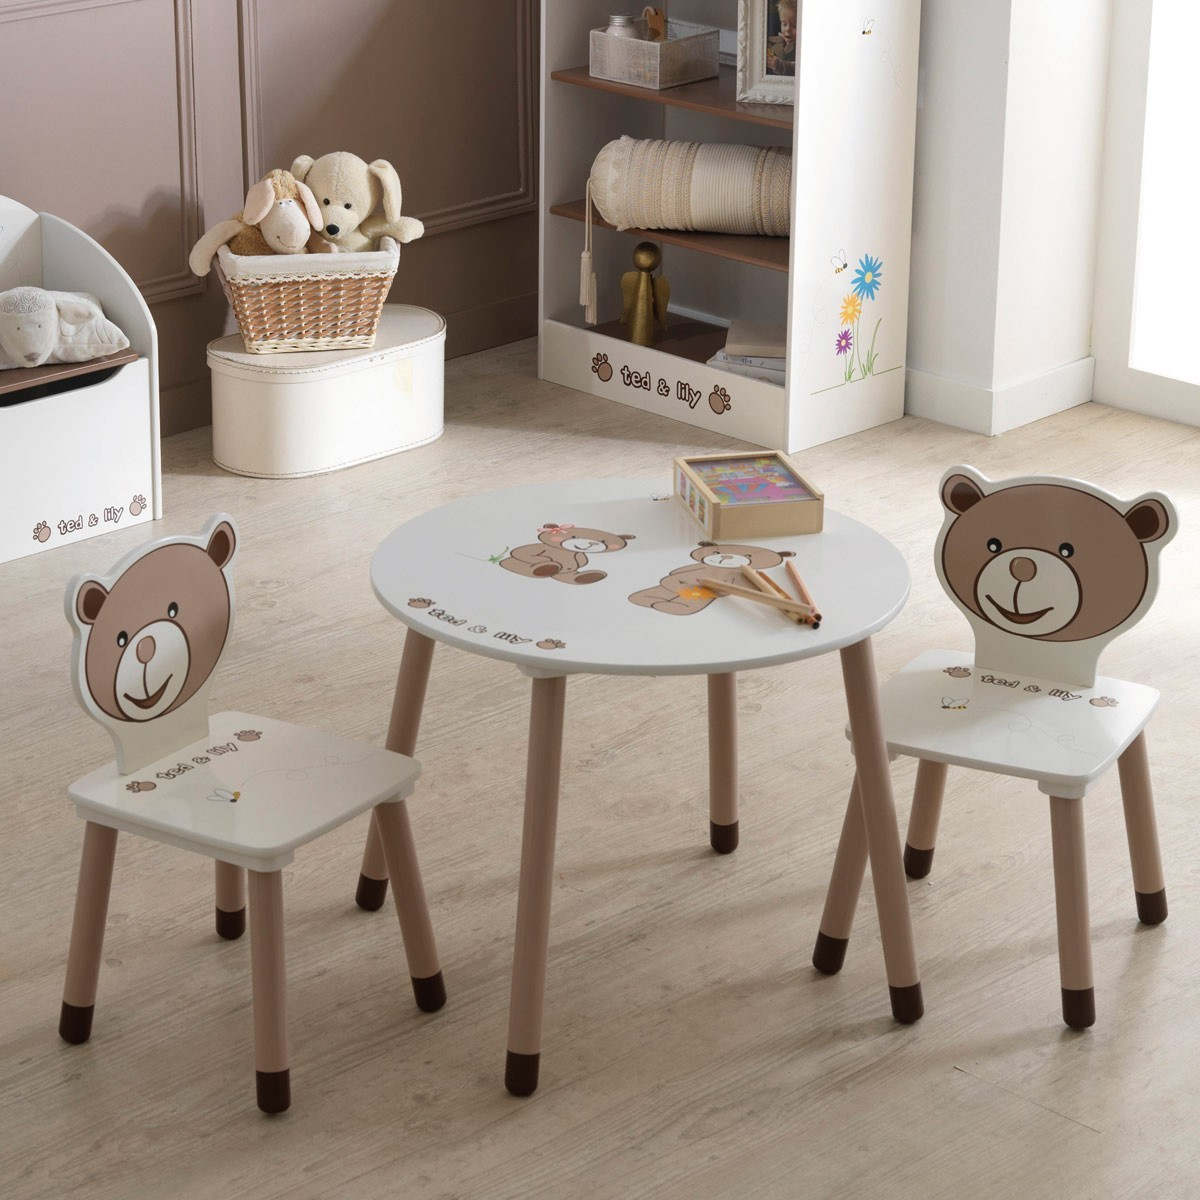 Kindertisch ted und lily 60cm mit motivdruck for Runde kindertische